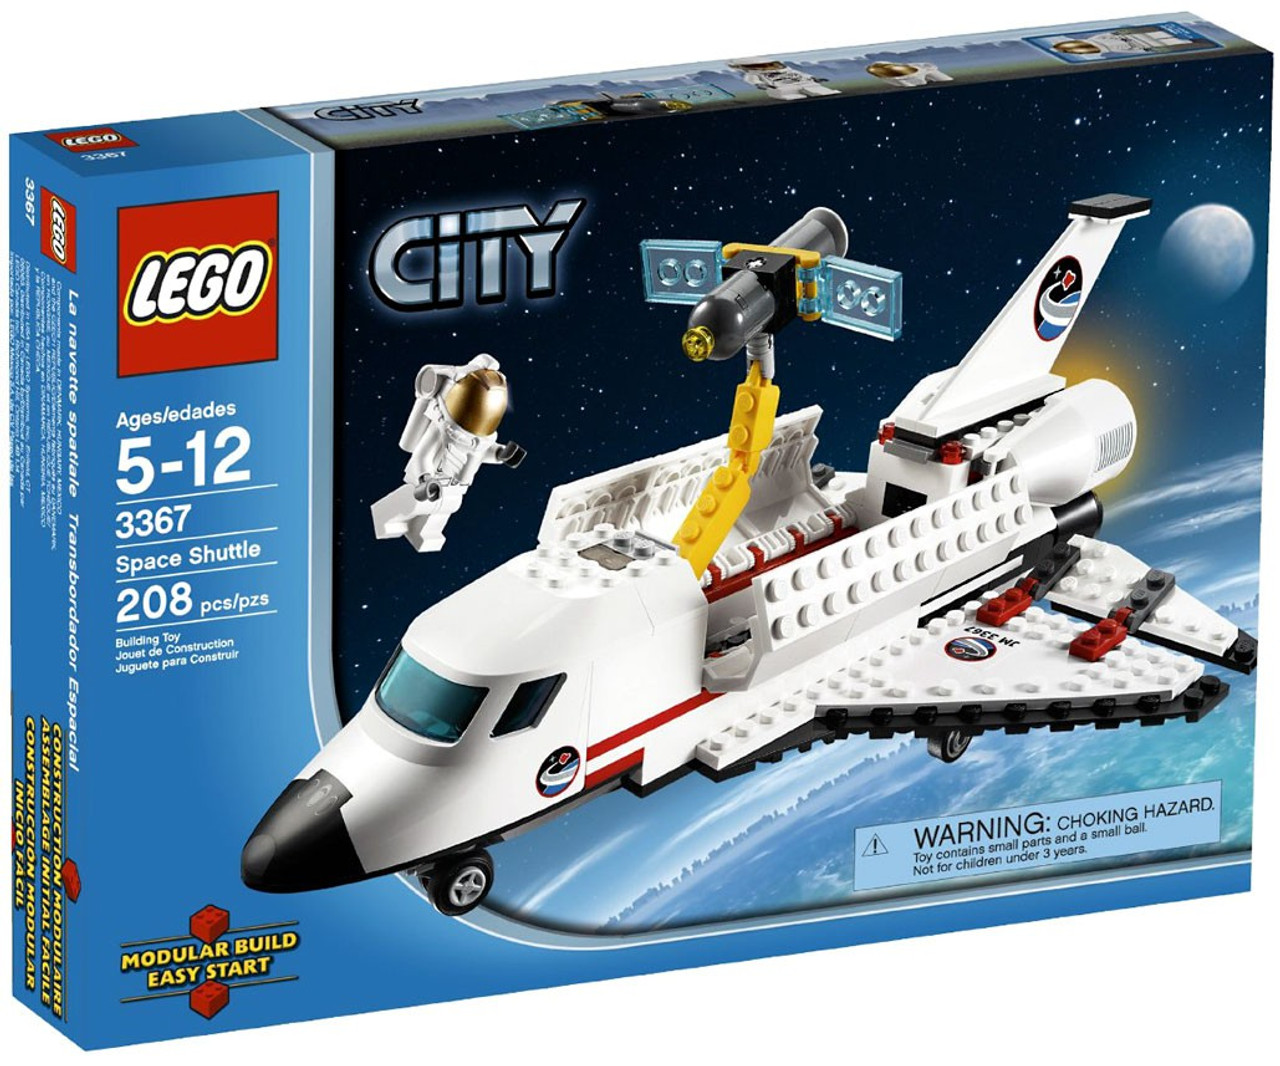 LEGO City Space Shuttle Set #3367